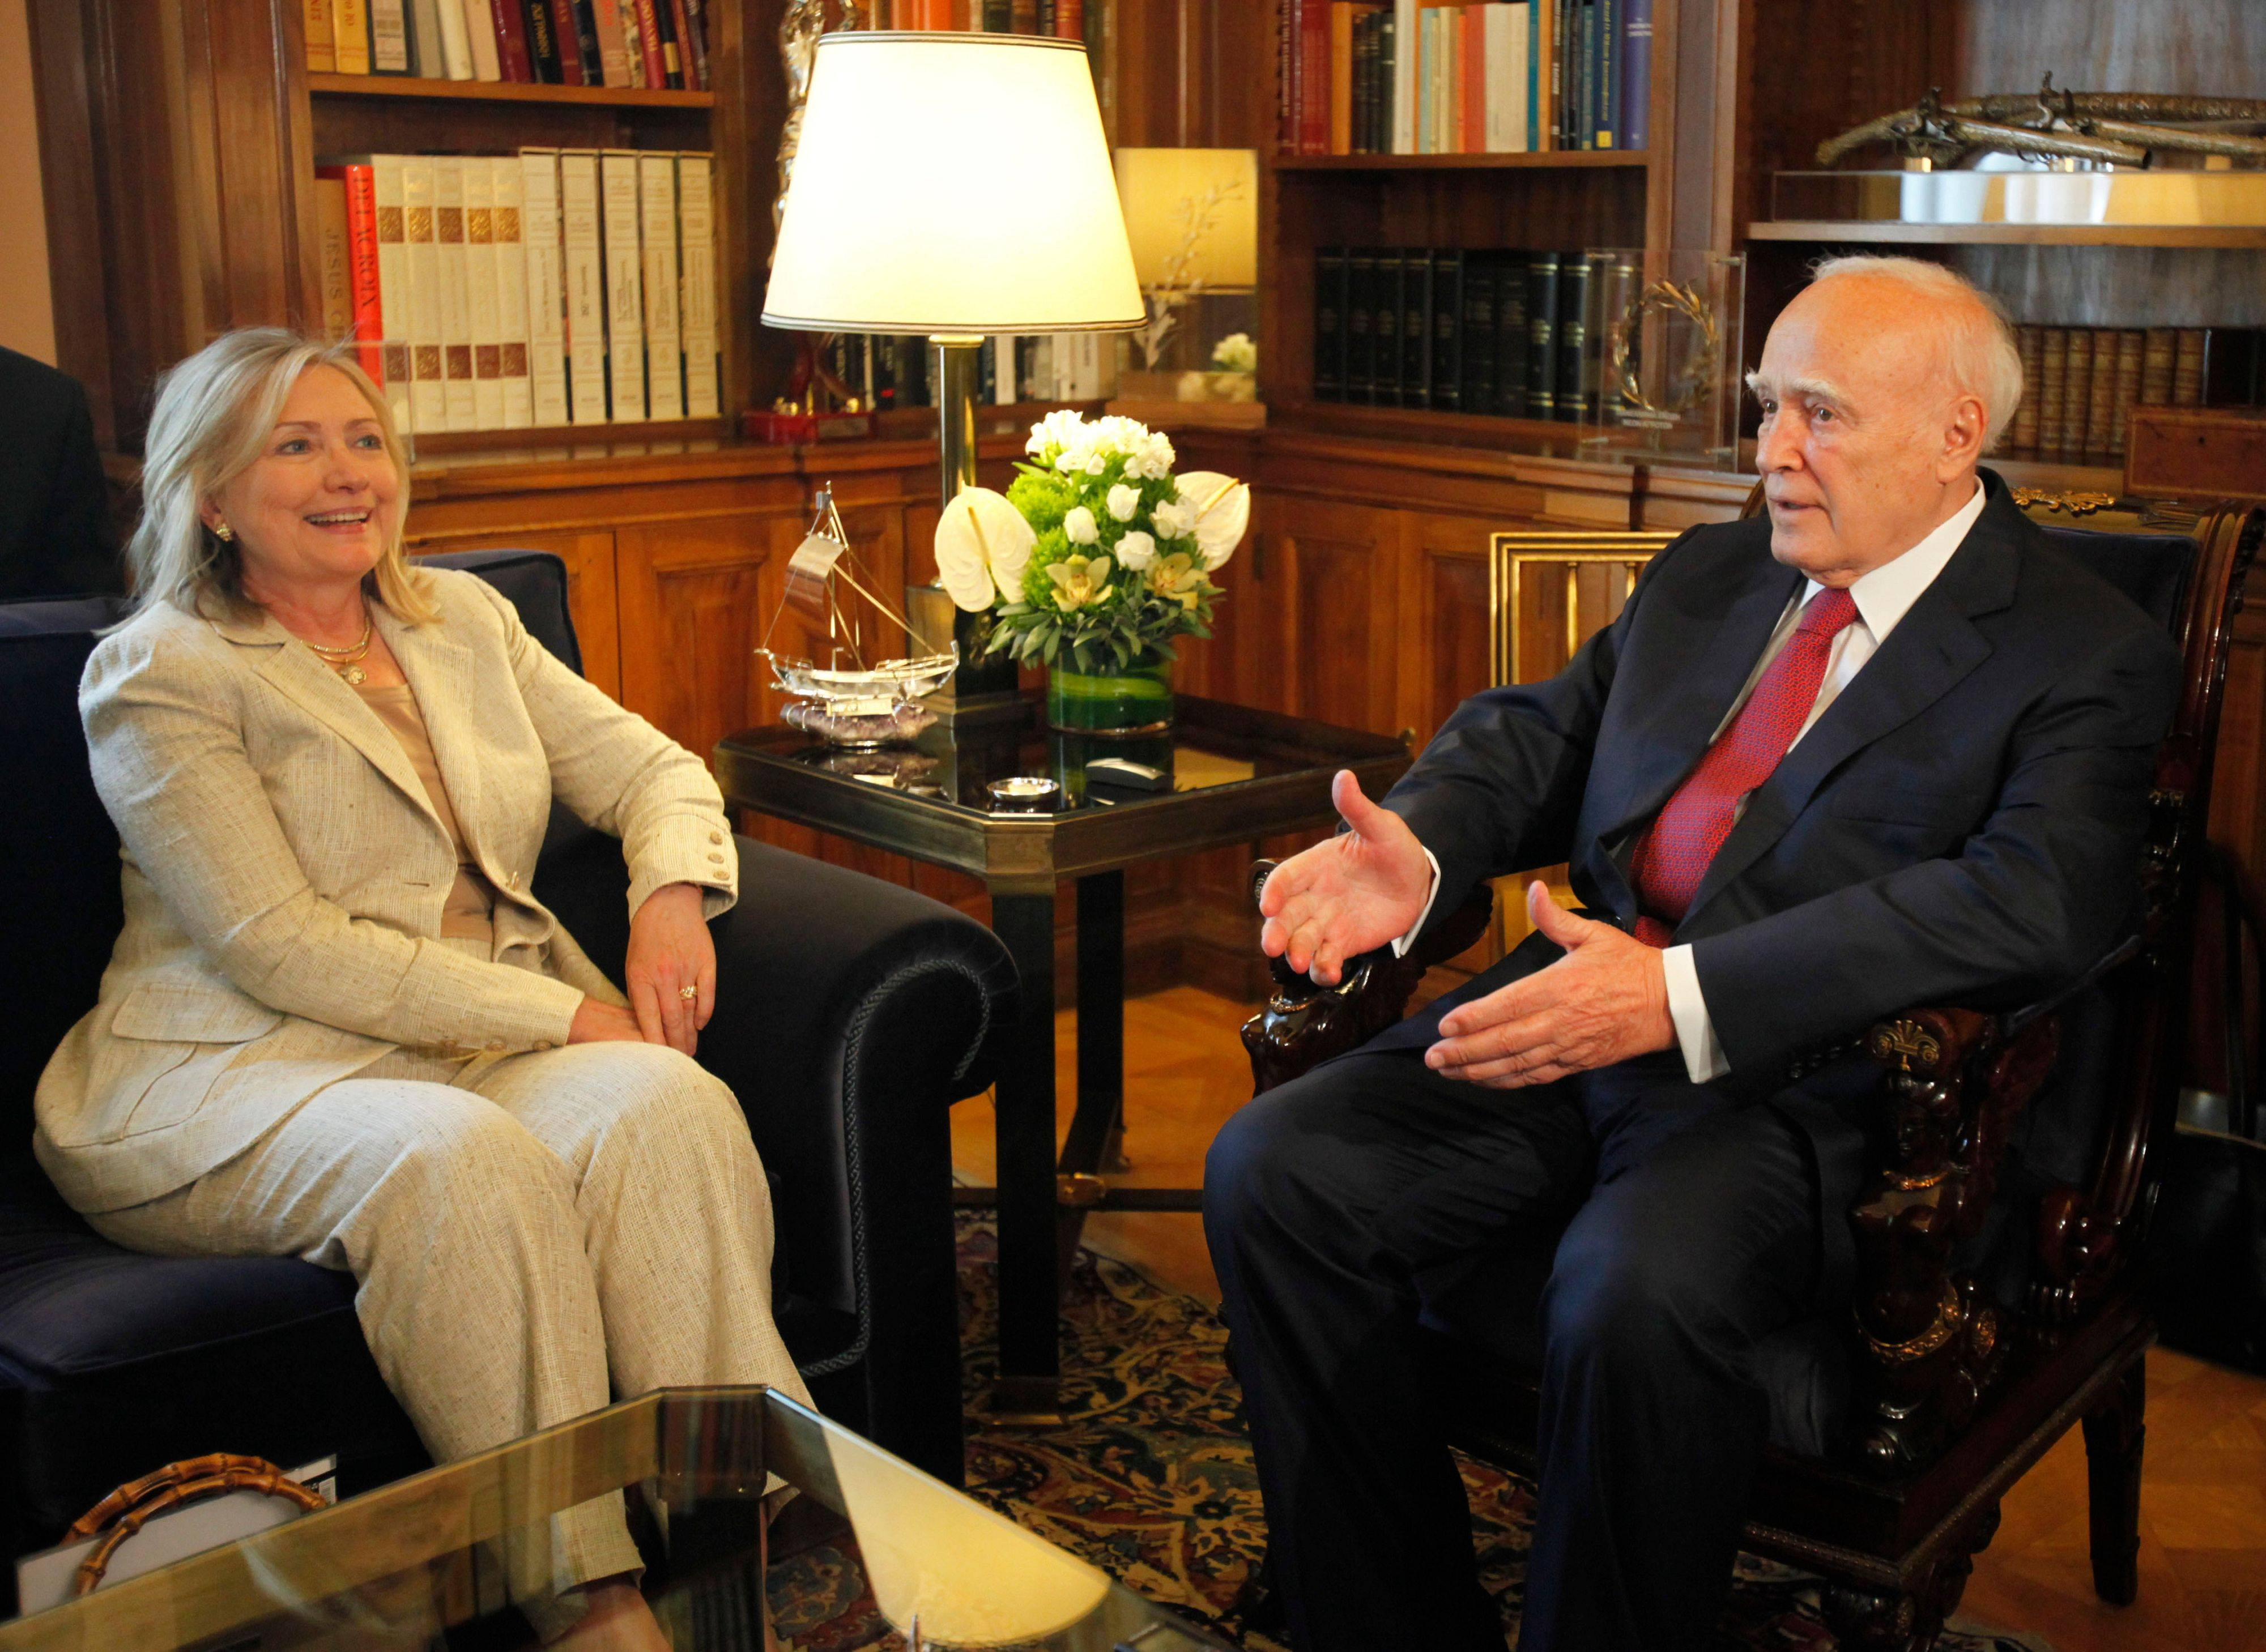 Secretary of State Hillary Rodham Clinton, left, talks with the Greek president Karolos Papoulias at the Presidential Palace in Athens on Sunday.